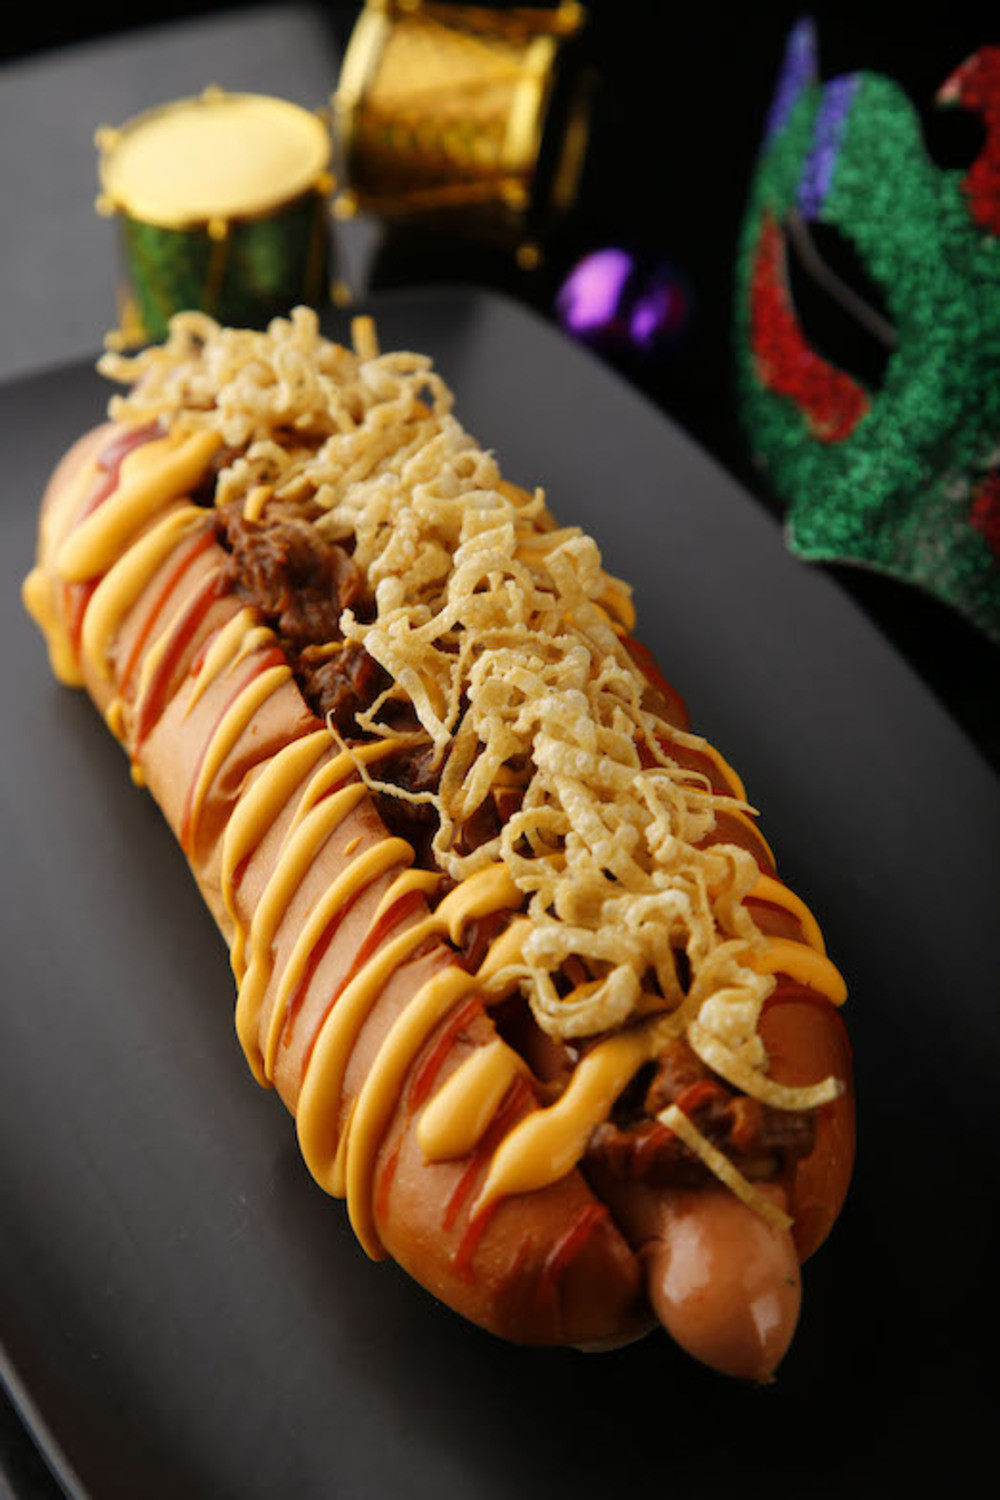 Supersized hot dog with braised beef and cheese sauce